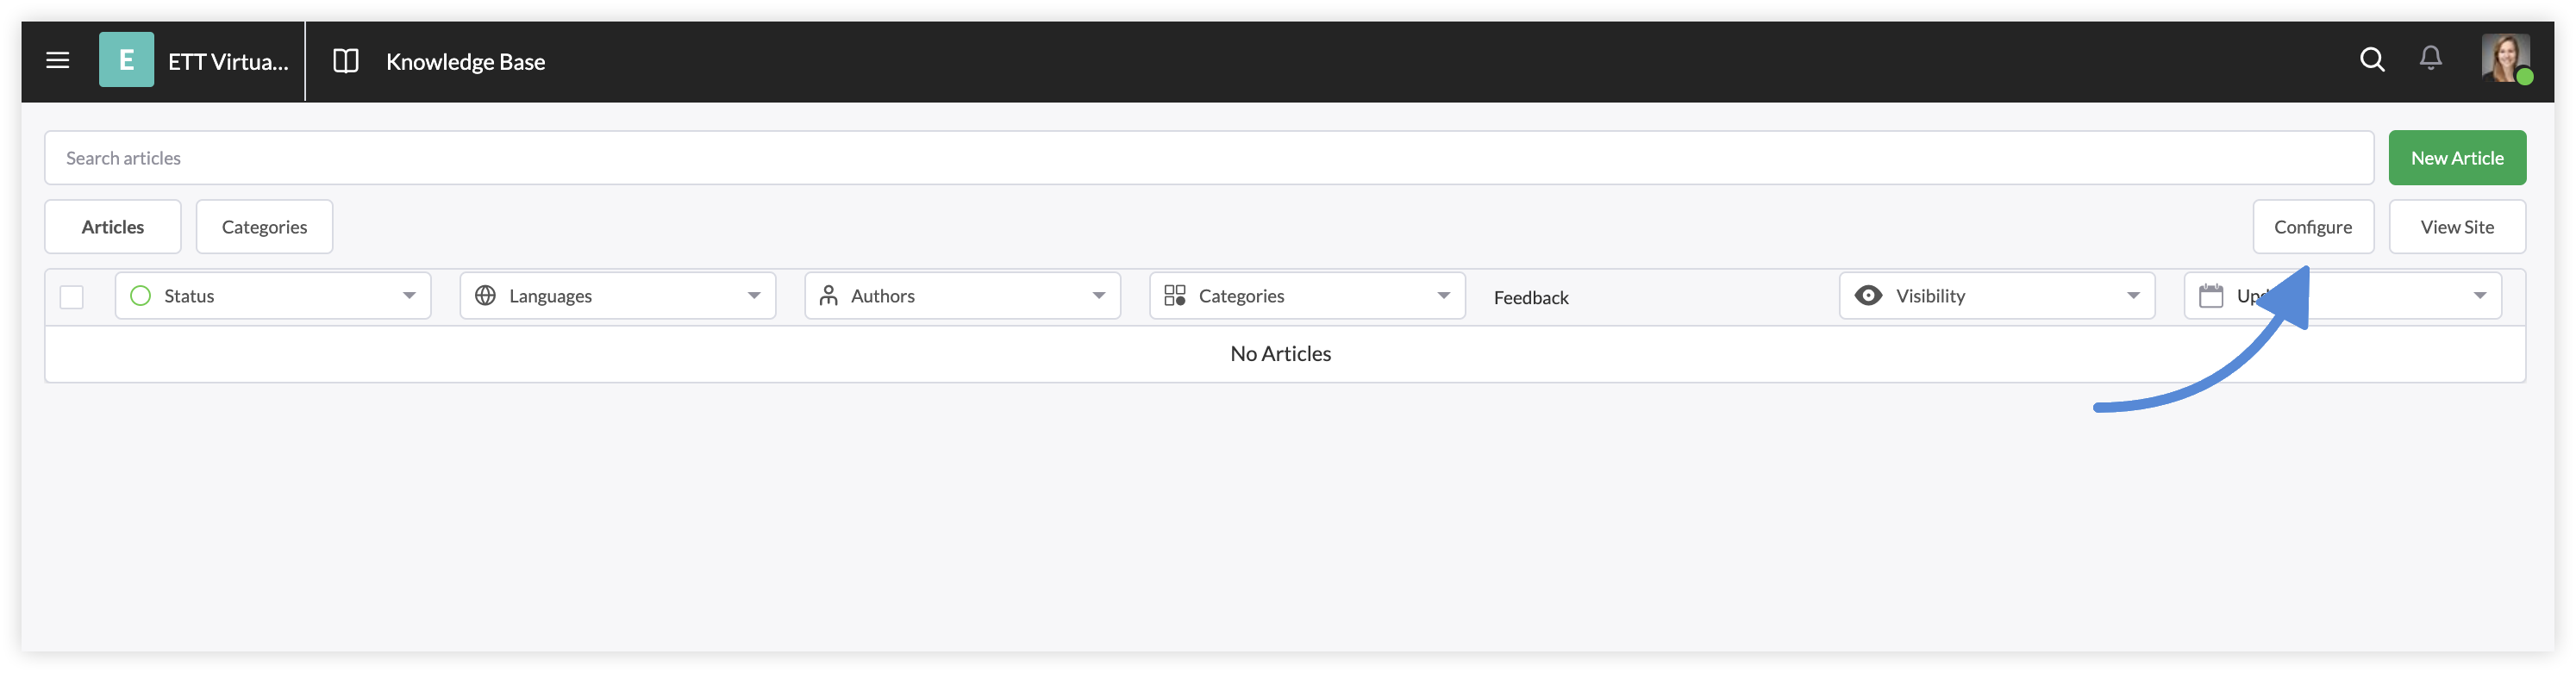 Screenshot of the Configure button on the Tawk.to website